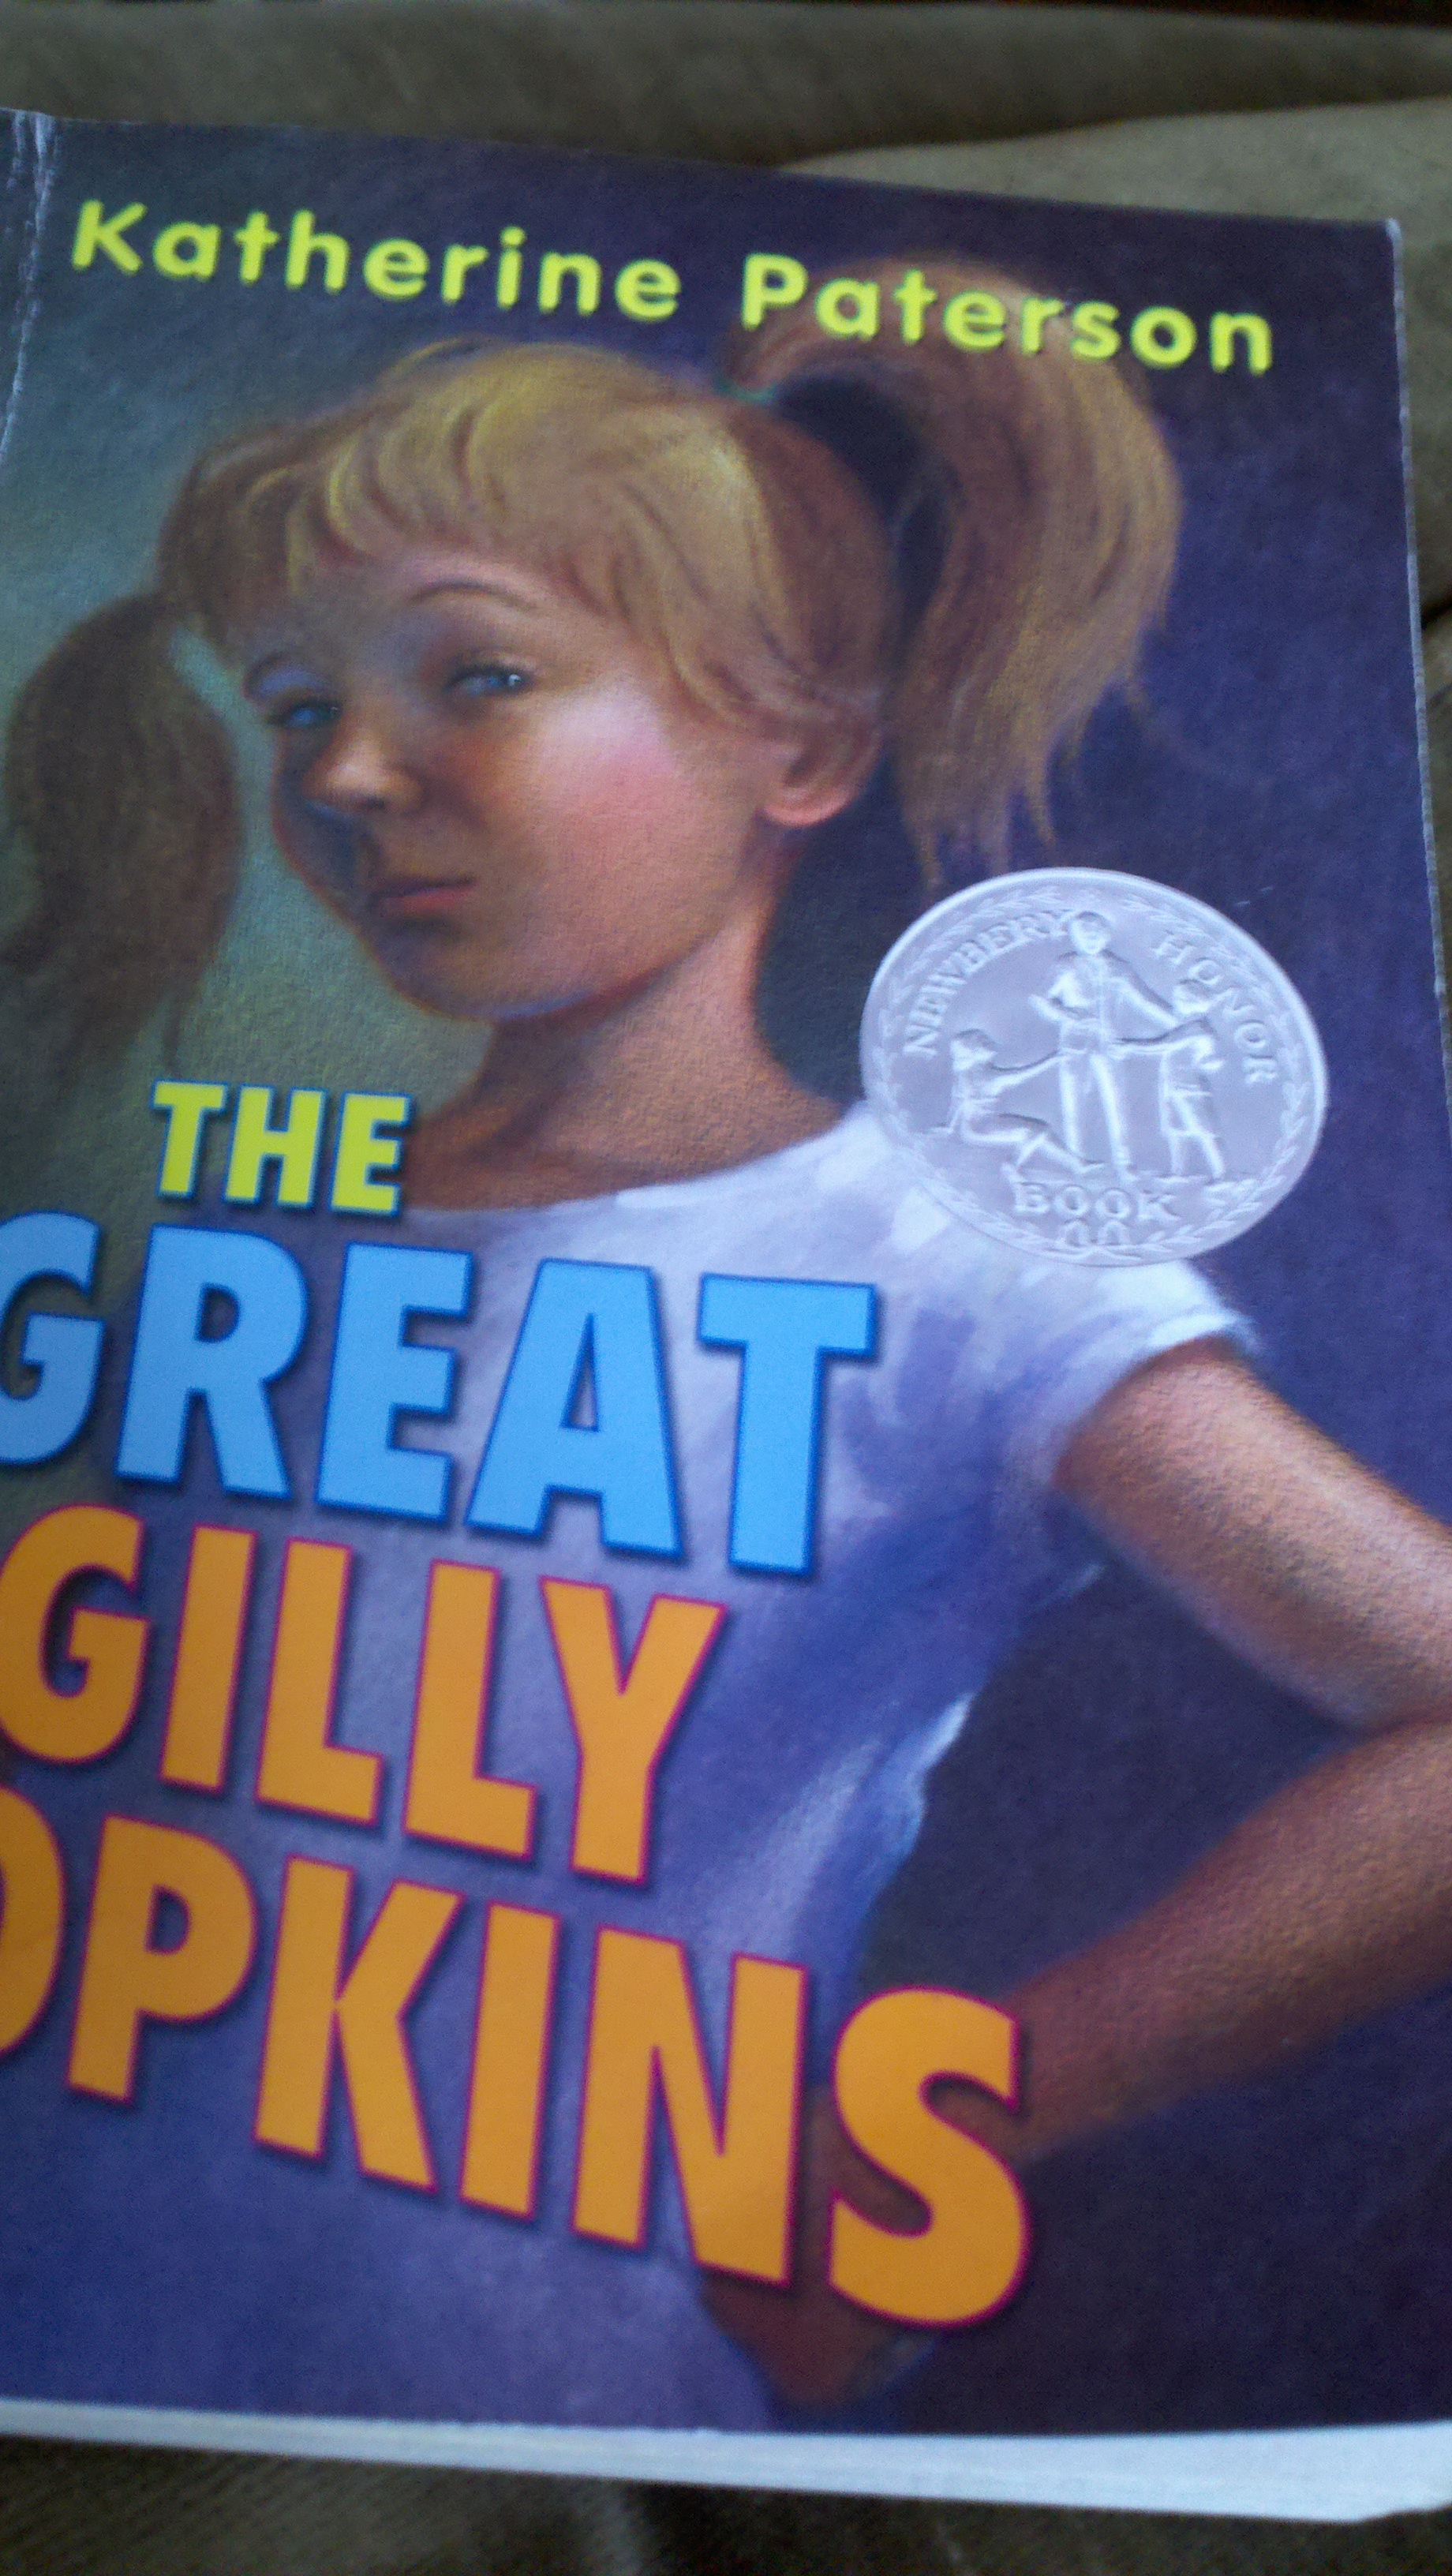 a review of the themes in the great gilly hopkins by katherine paterson But the rescue doesn't work out, and the great gilly hopkins is left thinking that   amazoncom review gilly  this newbery honor book manages to treat a  somewhat grim, and definitely grown-up theme with love and humor,  katherine  paterson was born in china, where she spent part of her childhood.